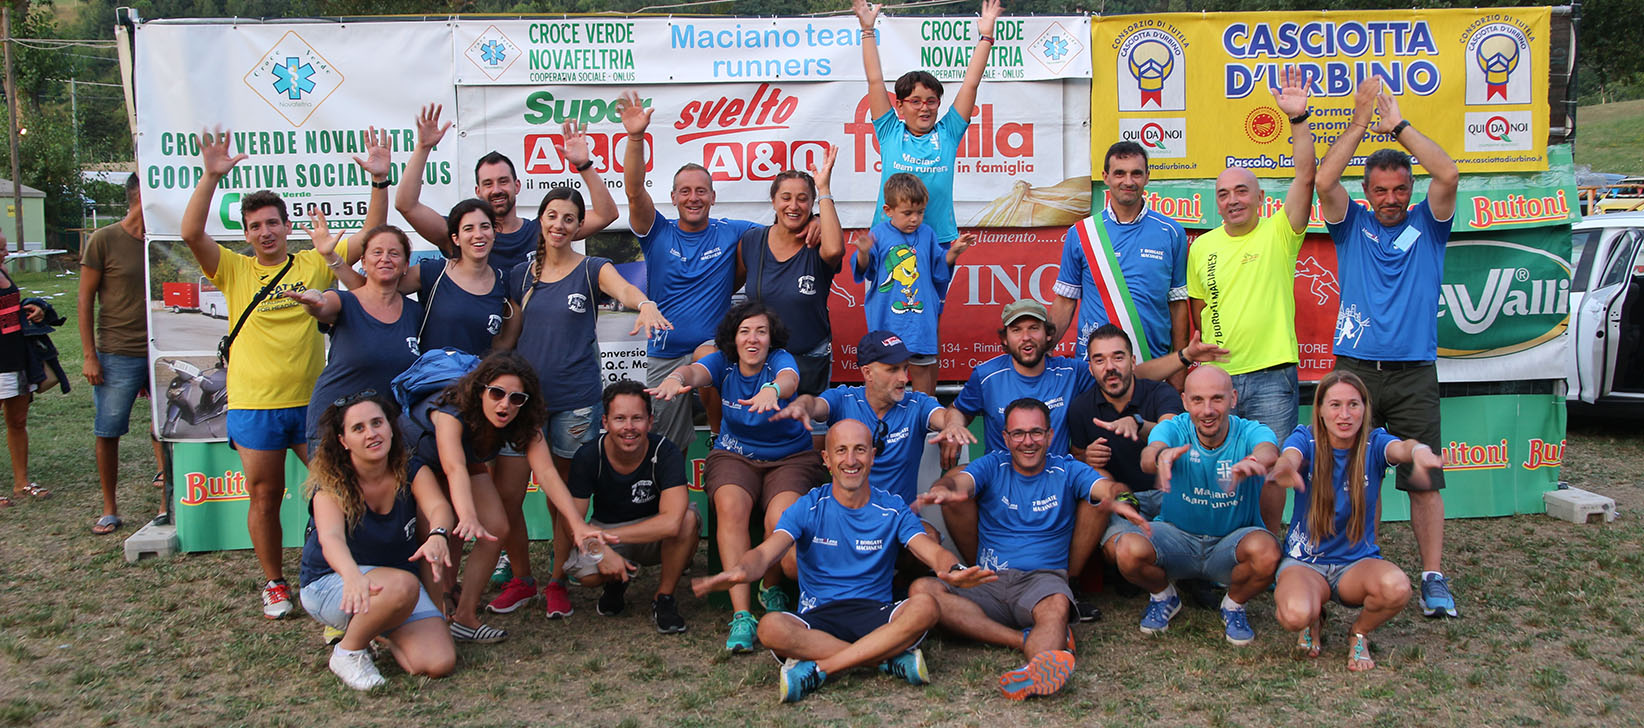 Maciano Team Runners